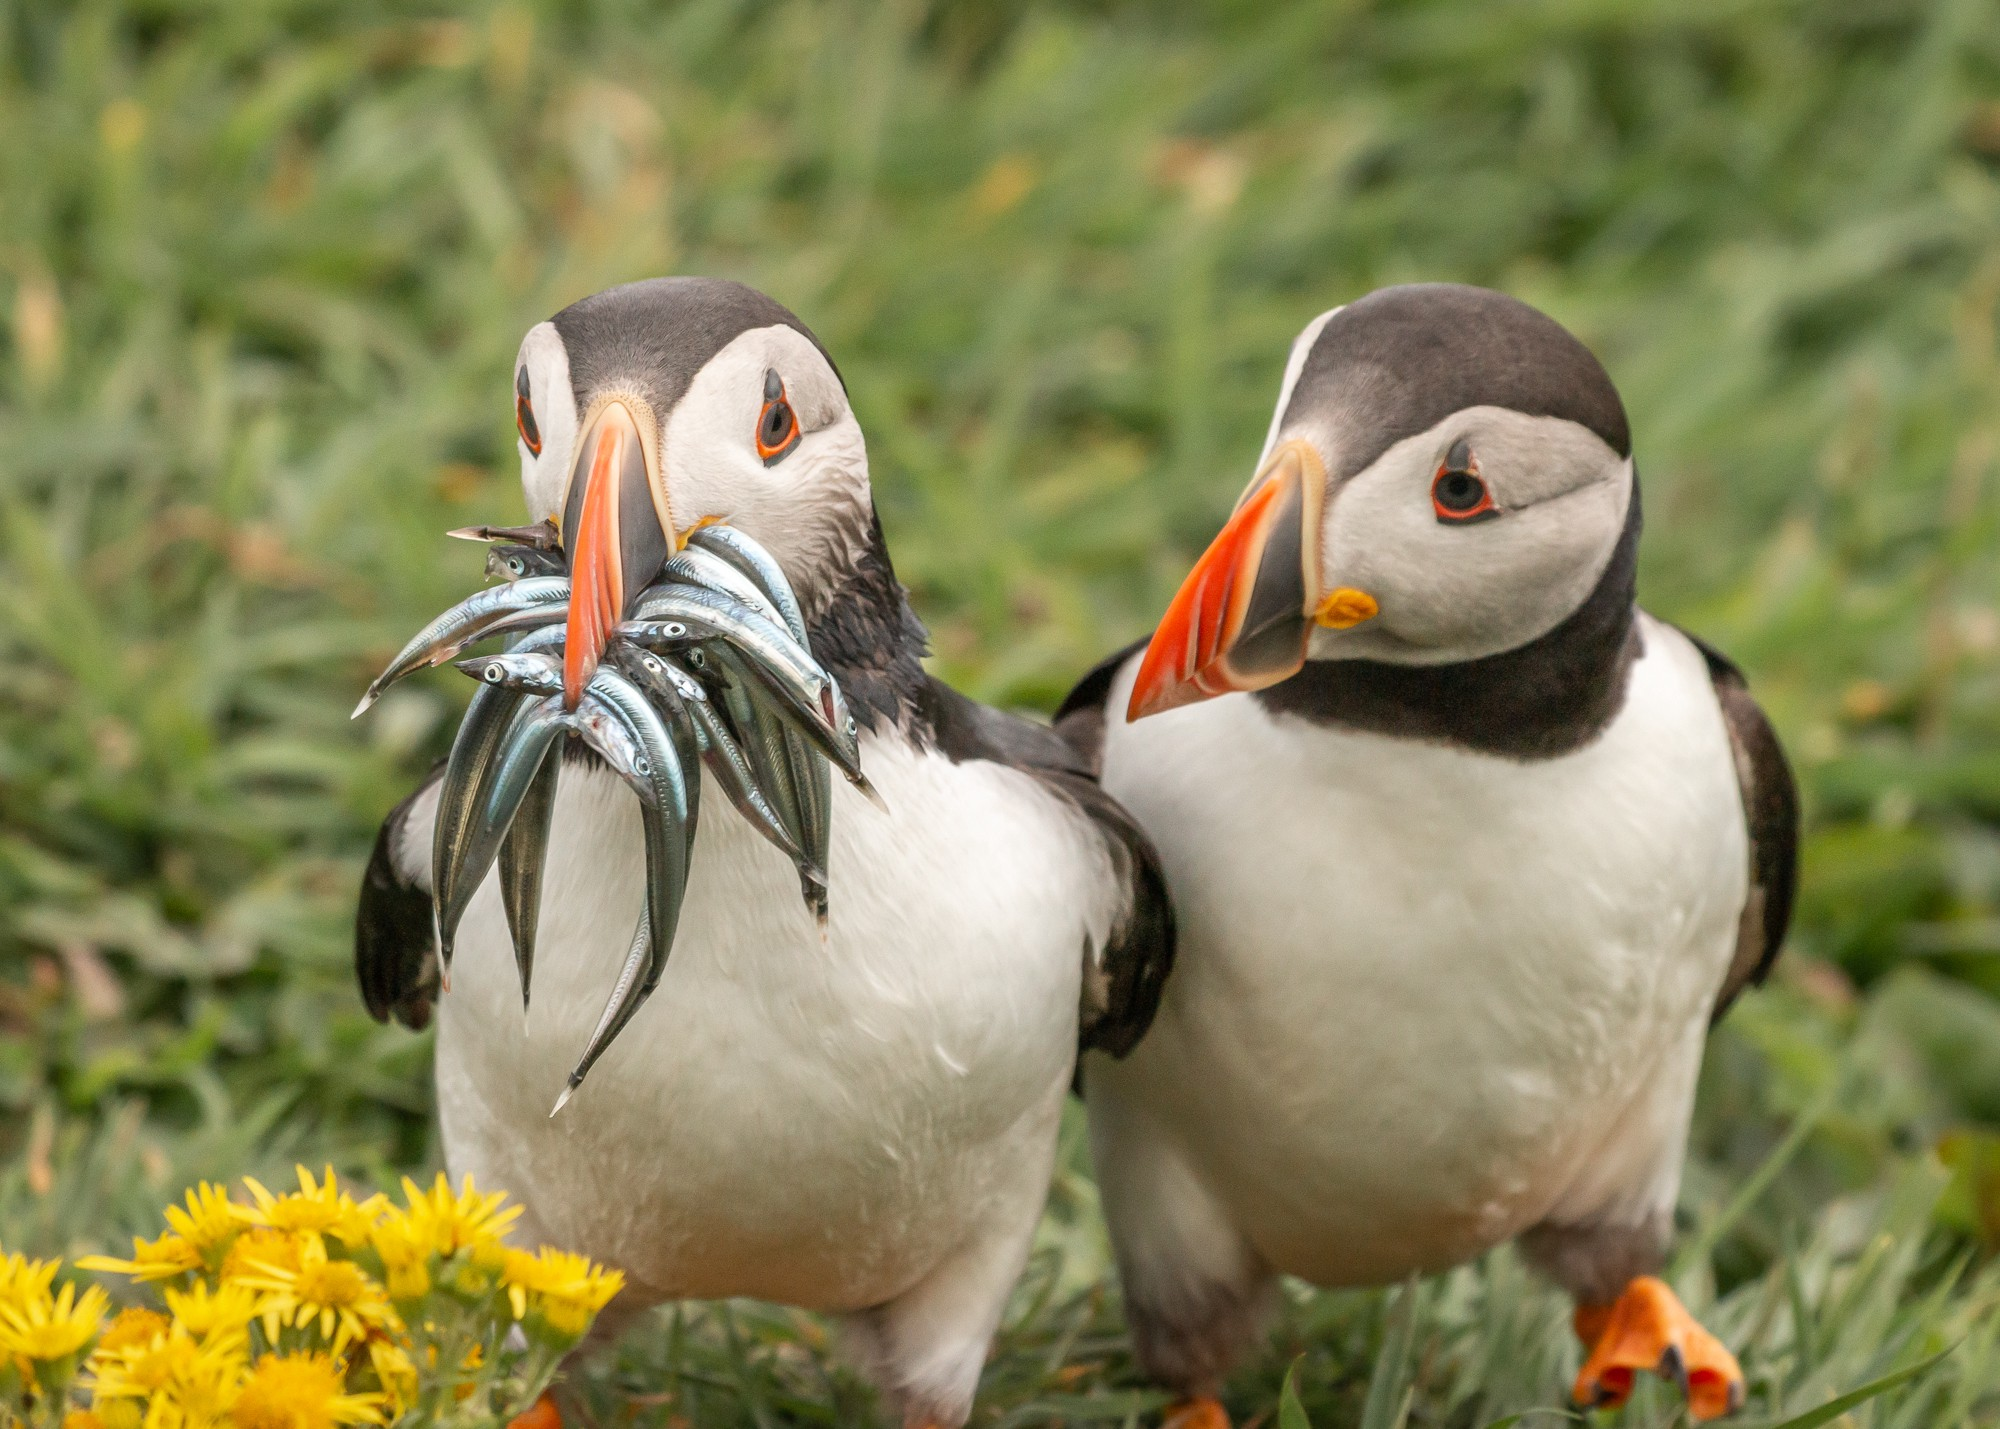 Two puffins pose together — one has a mouth teeming with shiny blue fish, and the other is simply staring at that bounty